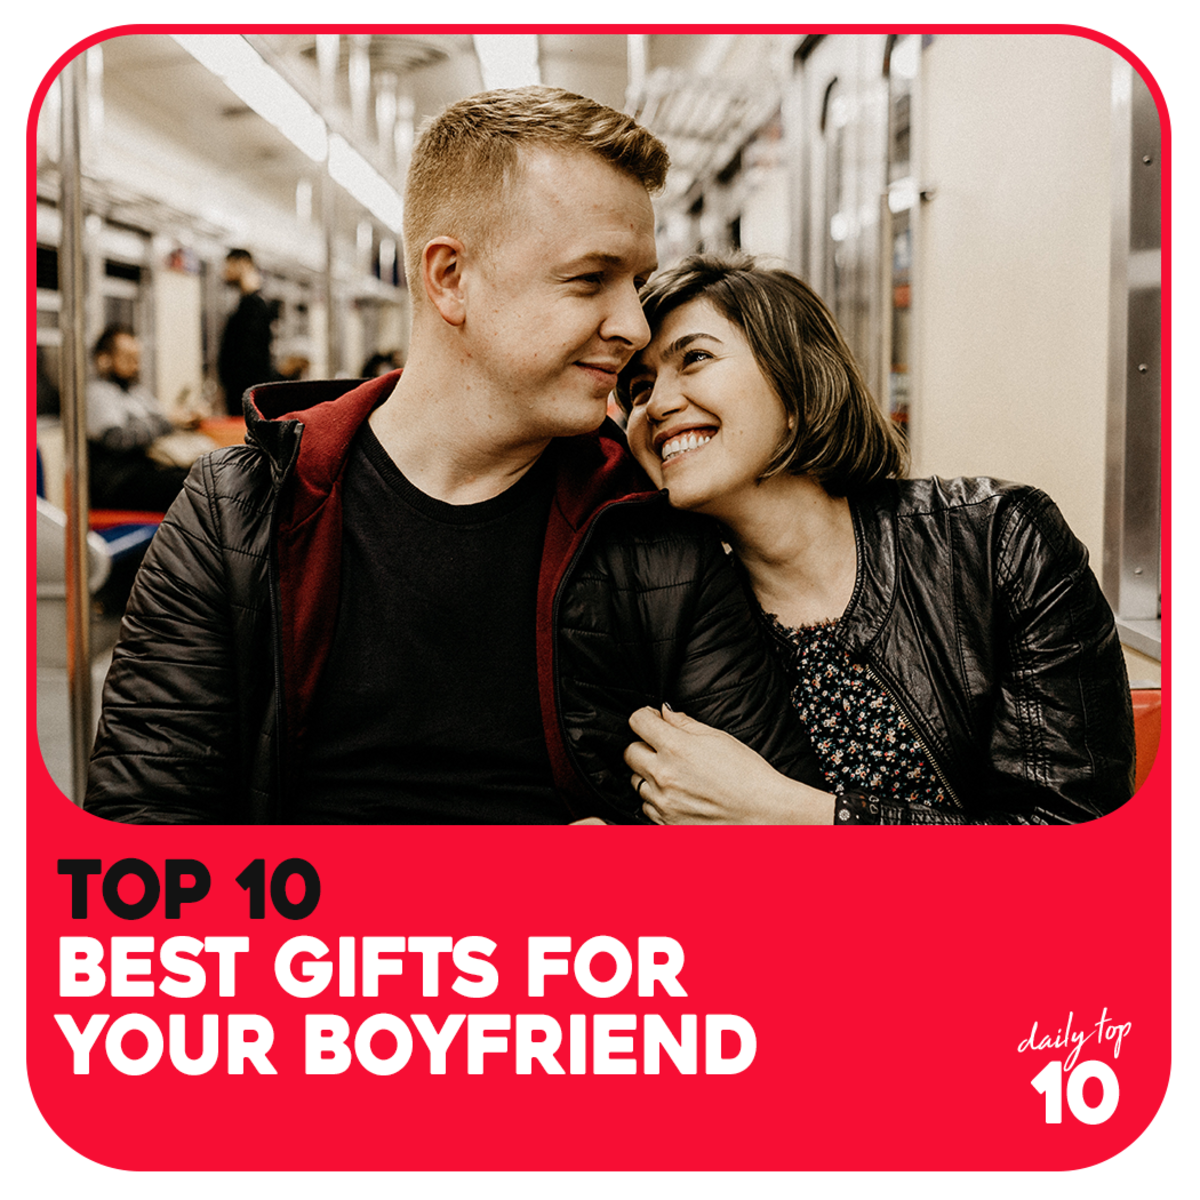 top-10-best-gifts-for-your-boyfriend